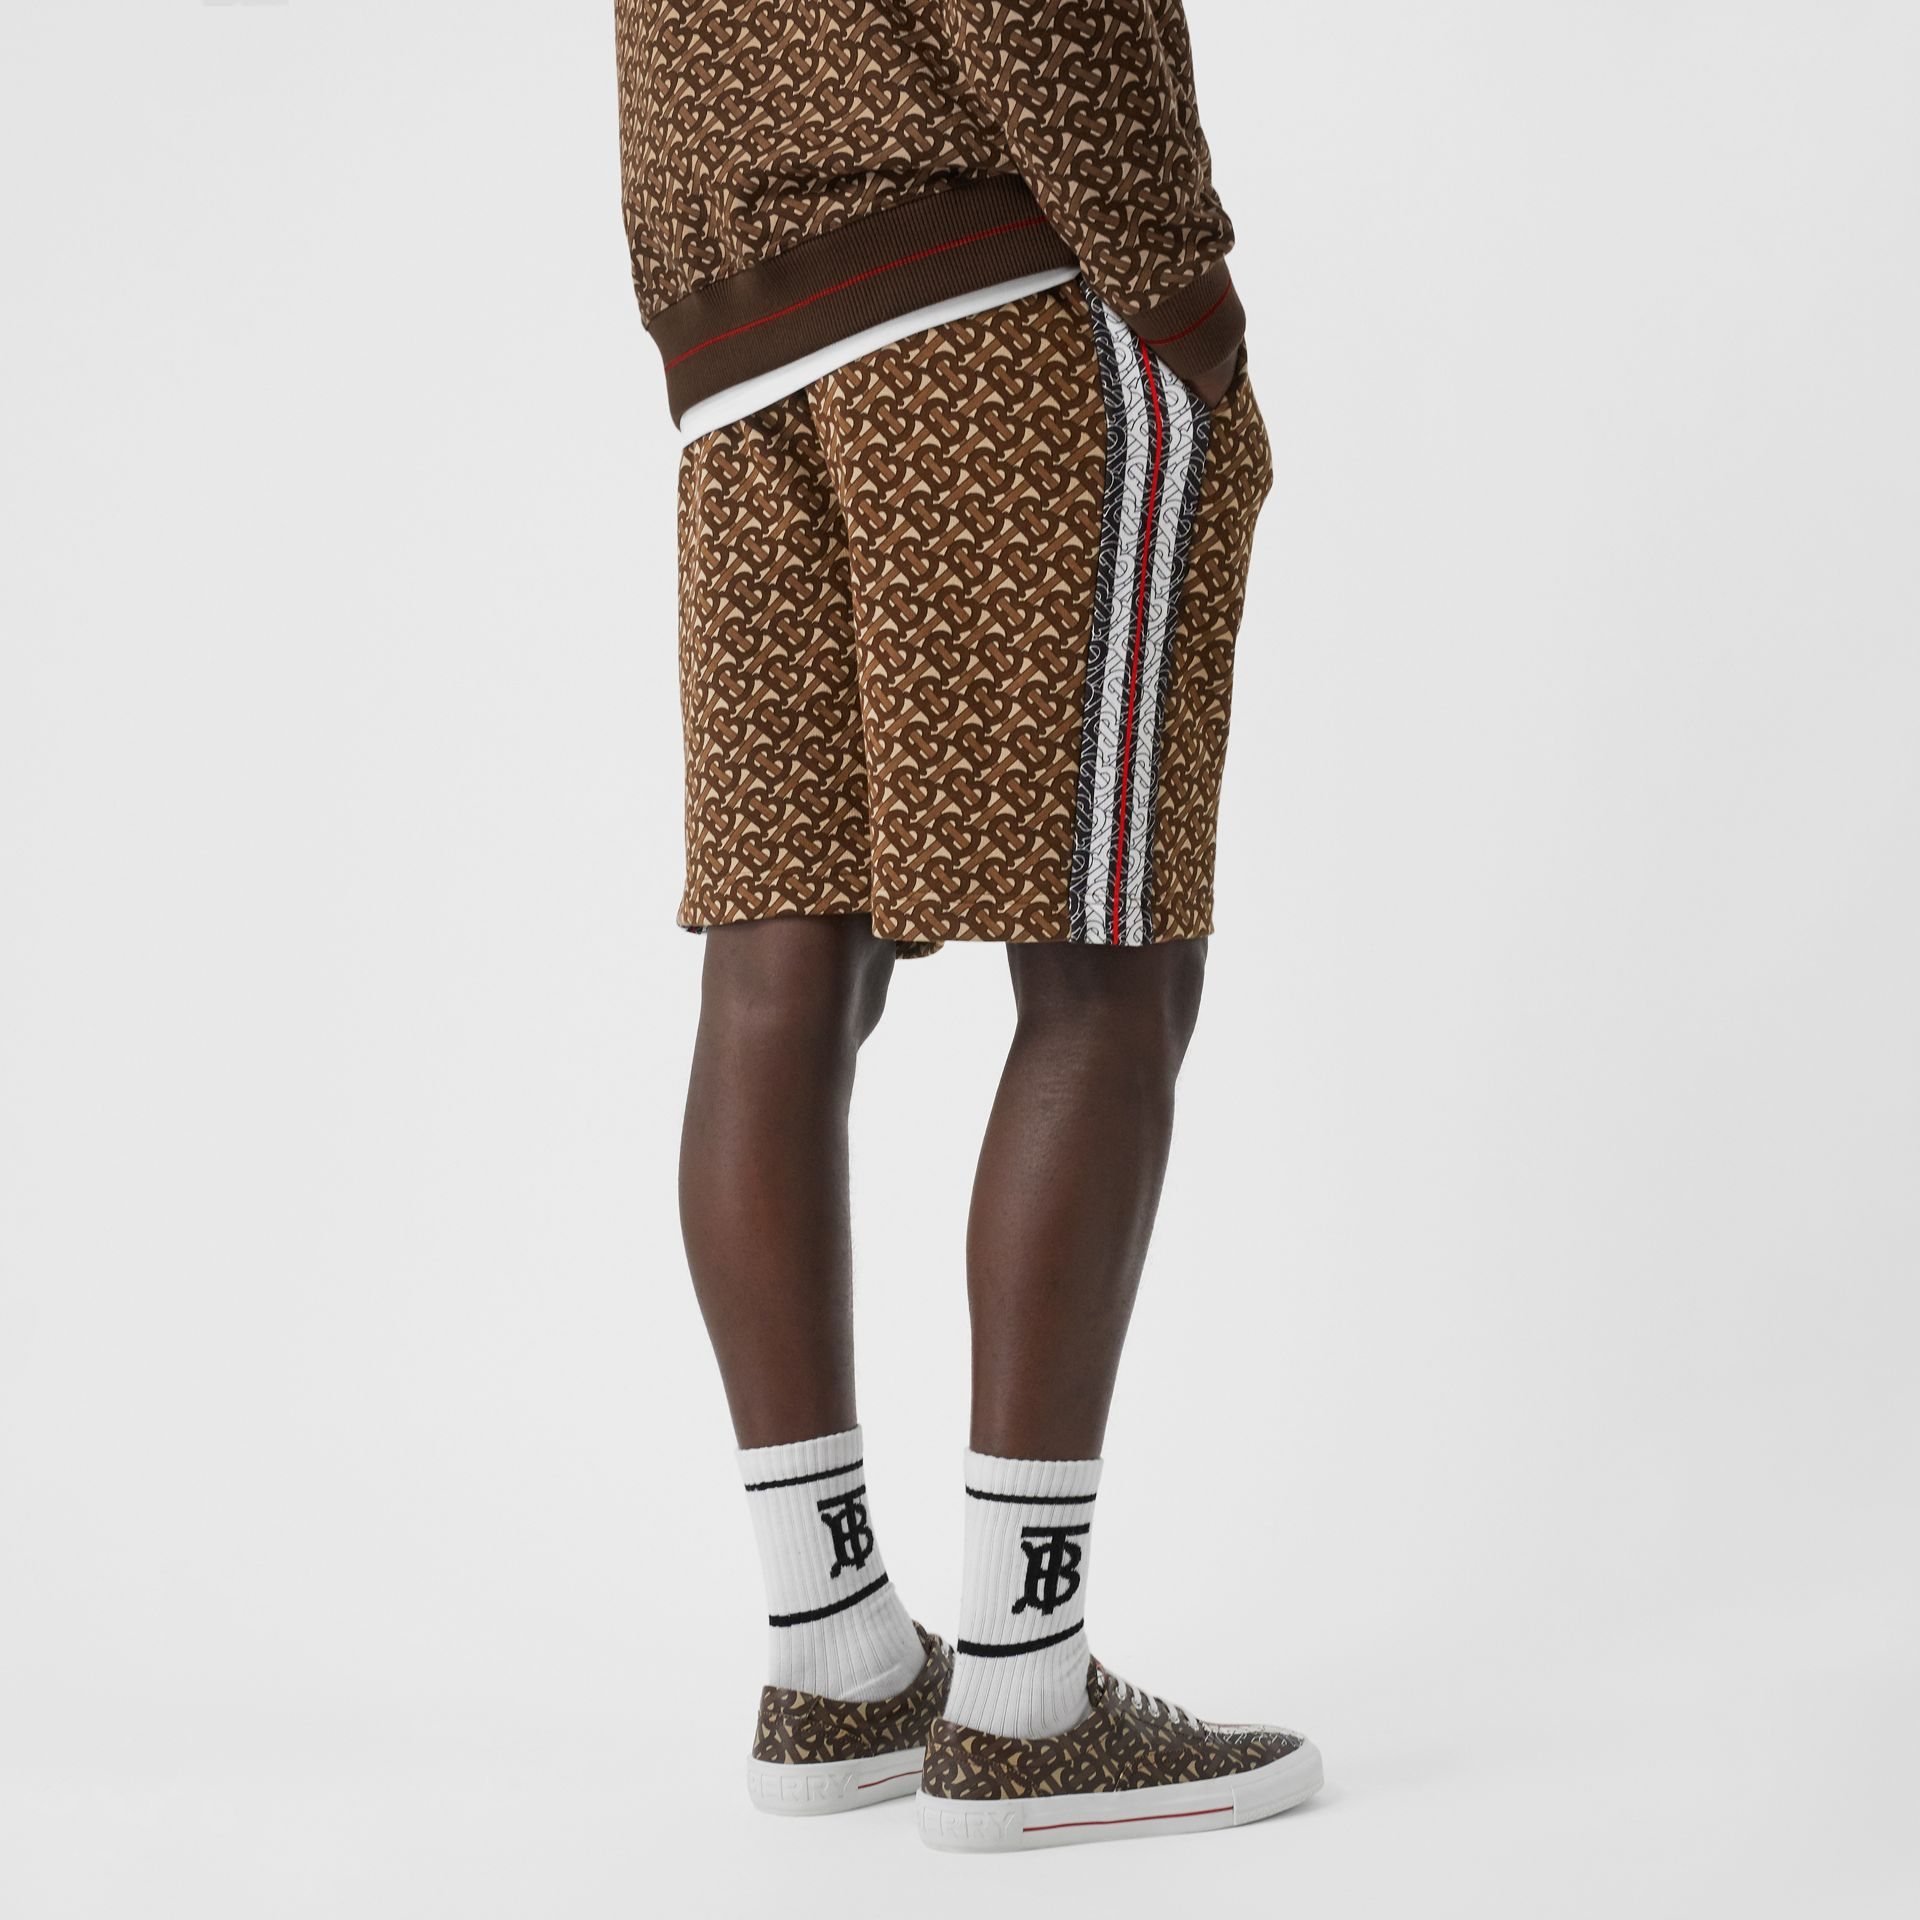 Monogram Stripe Print Cotton Drawcord Shorts in Bridle Brown - Men | Burberry Hong Kong S.A.R - gallery image 2